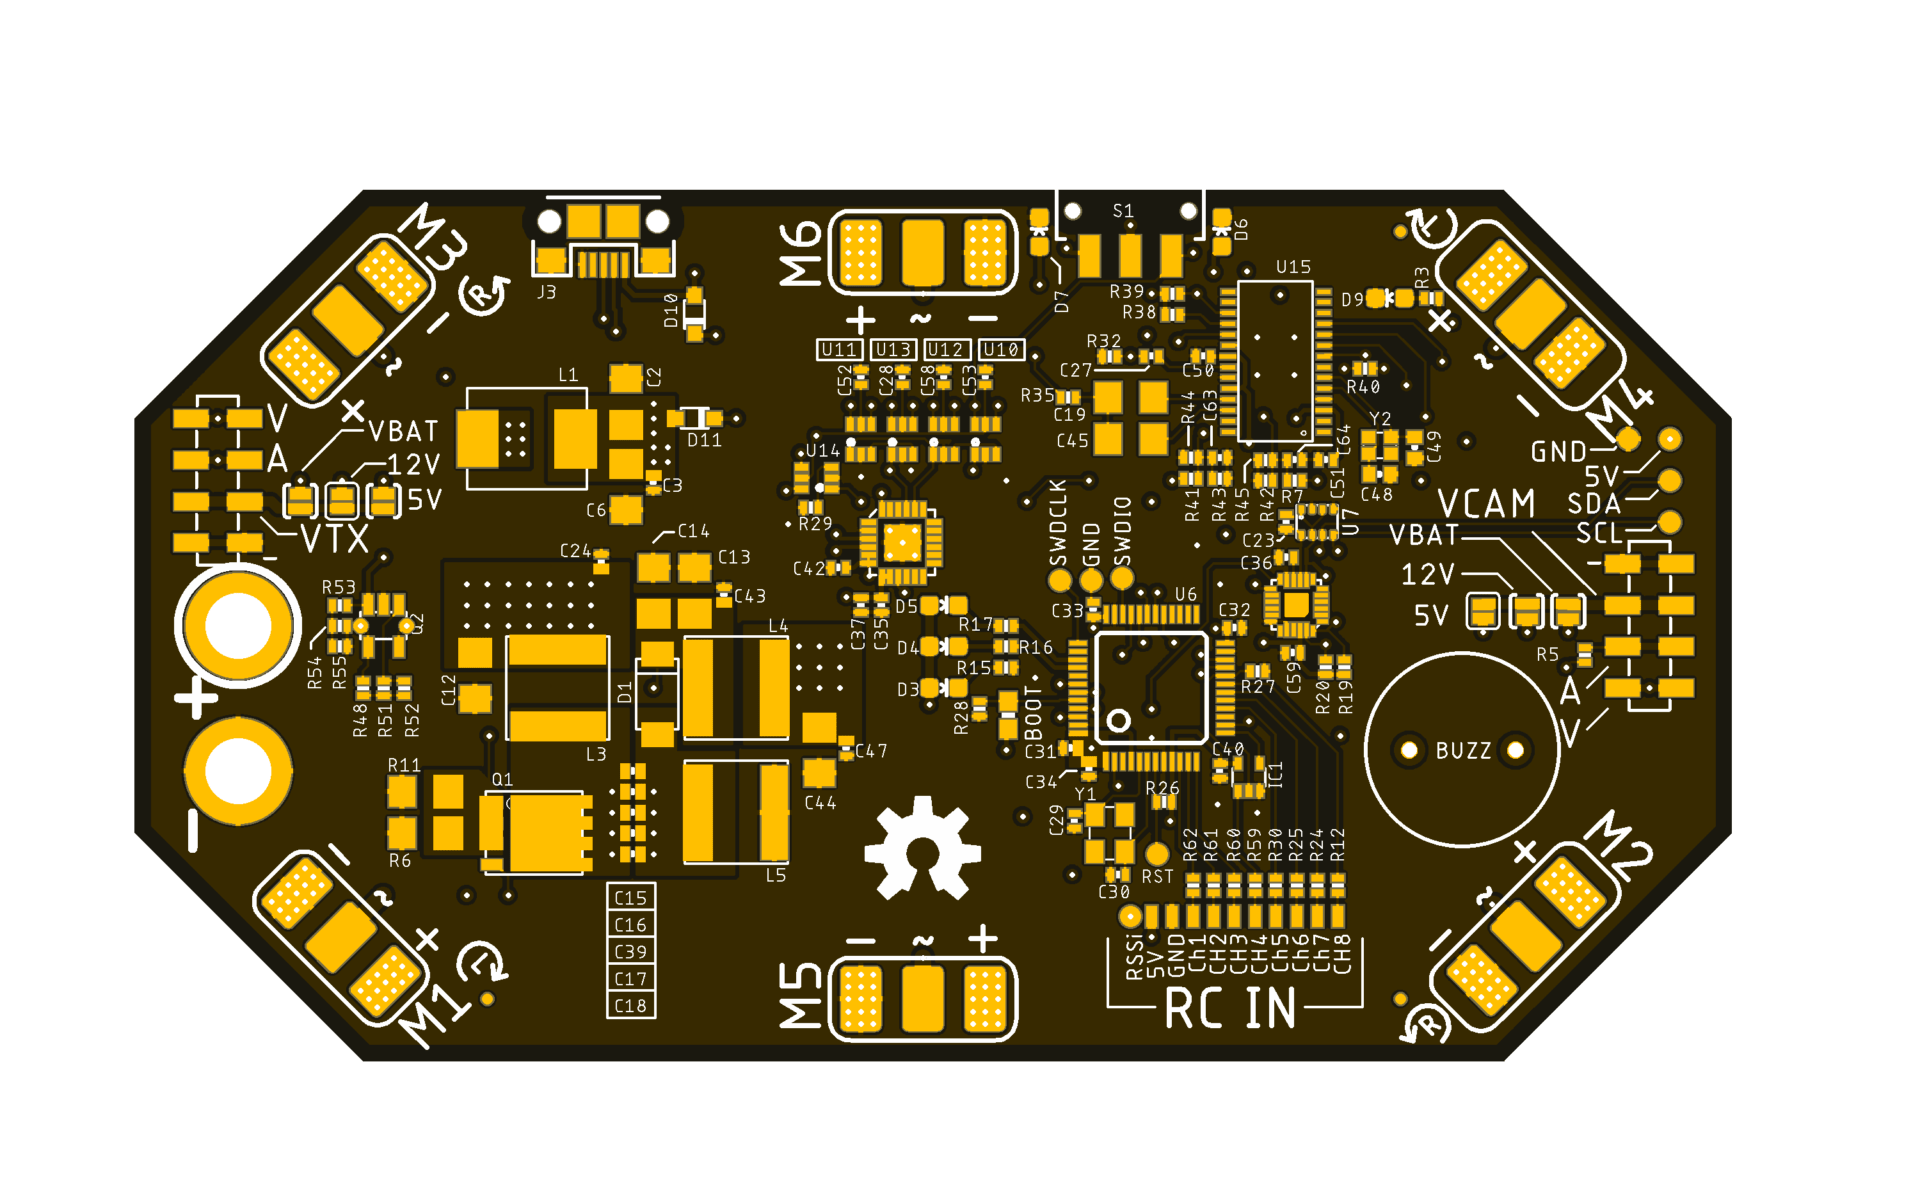 OpenAIO: An open-source, STM32 and Cleanflight-based flight